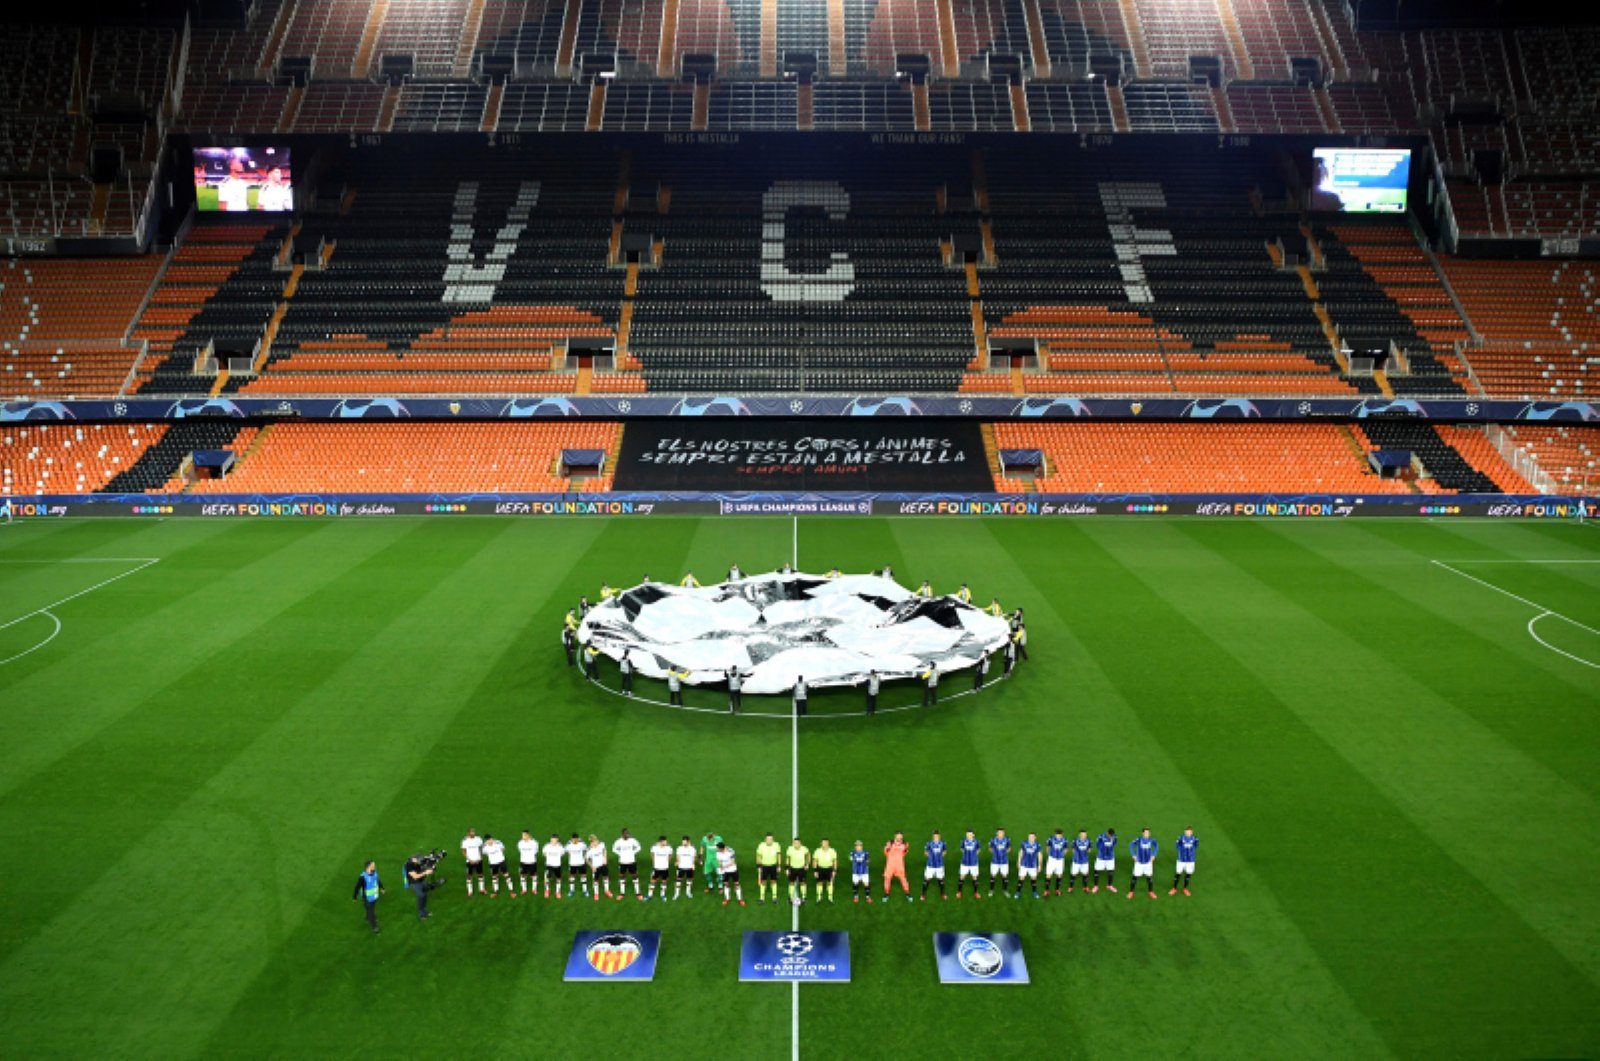 Atalanta and Valencia players line up ahead of the Champions League round of 16 second leg soccer match between Valencia and Atalanta in Valencia, Spain, Tuesday March 10, 2020. The match was played in an empty stadium because of the coronavirus outbreak. (UEFA via AP)